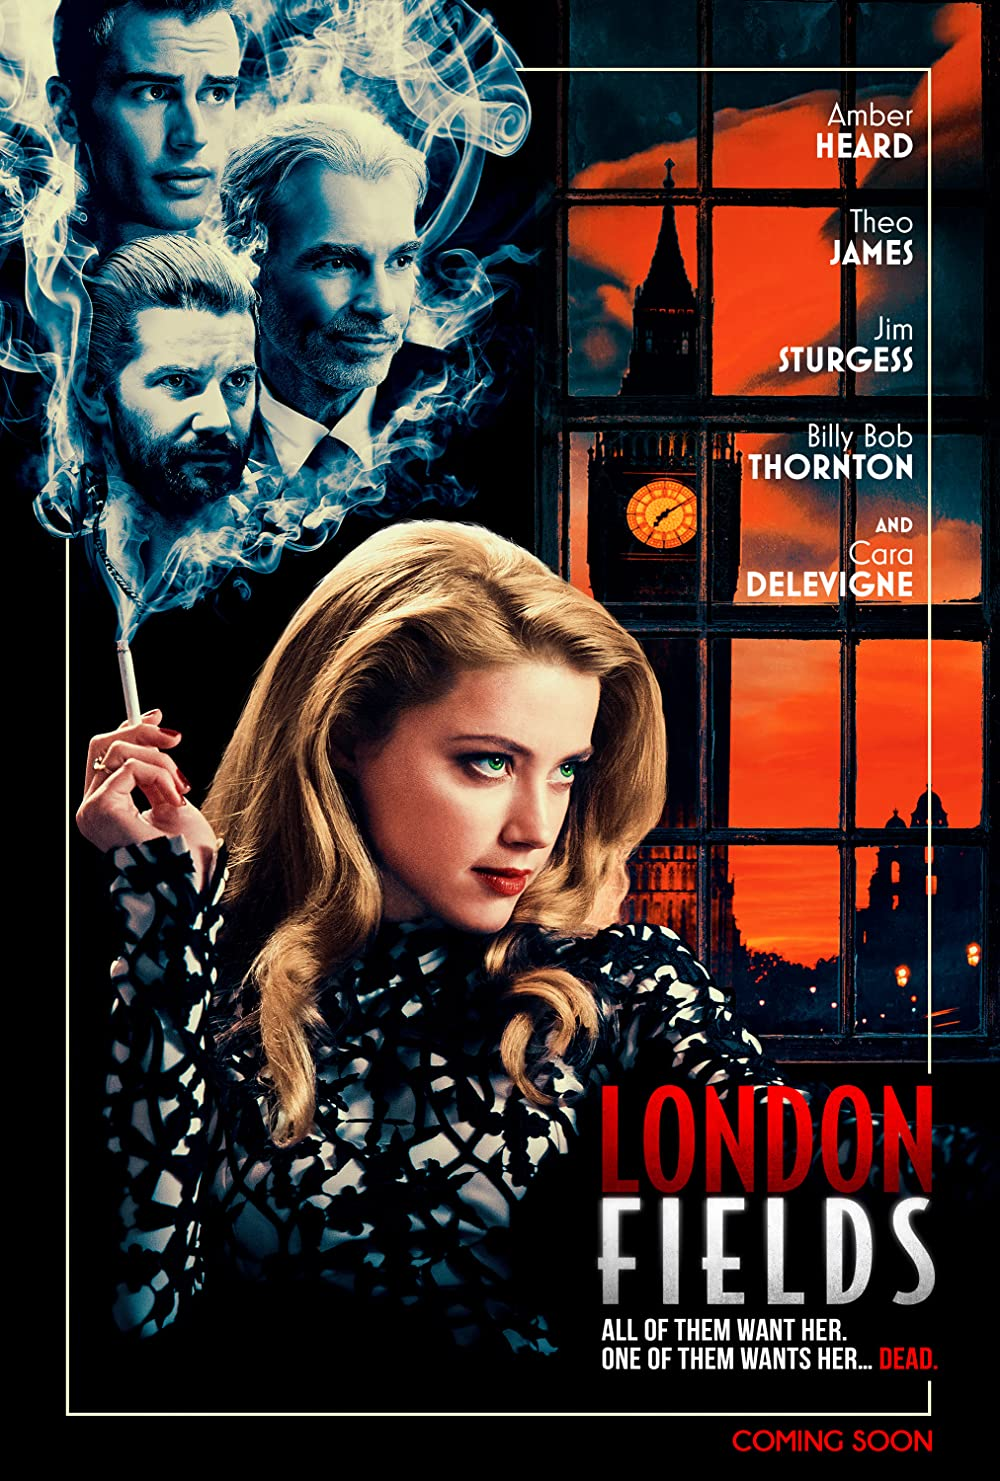 18+ London Fields 2018 Hindi ORG Dual Audio 1080p BluRay ESubs 1.8GB